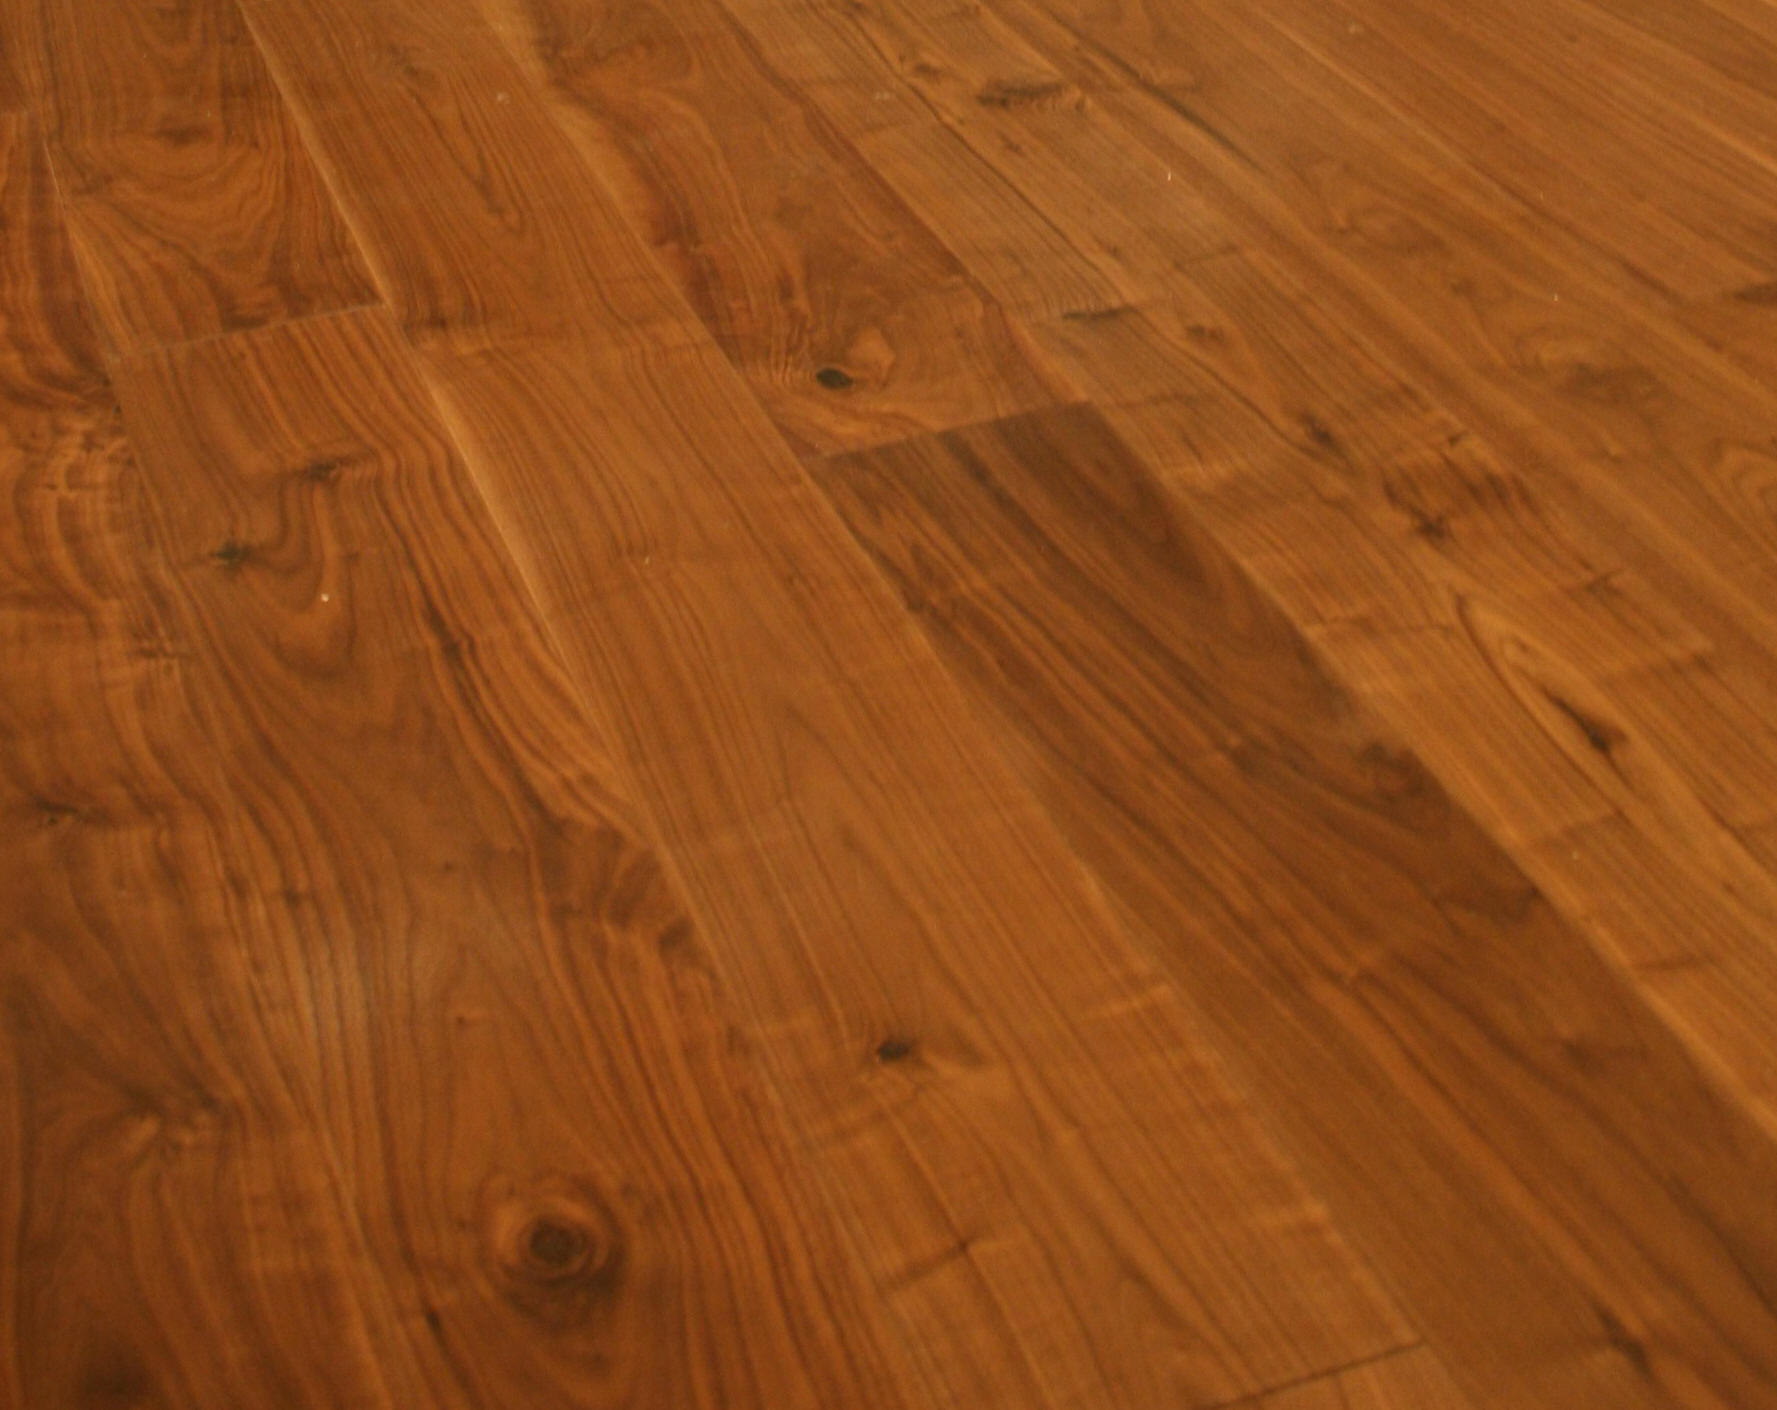 Parquet Pictures to pin on Pinterest